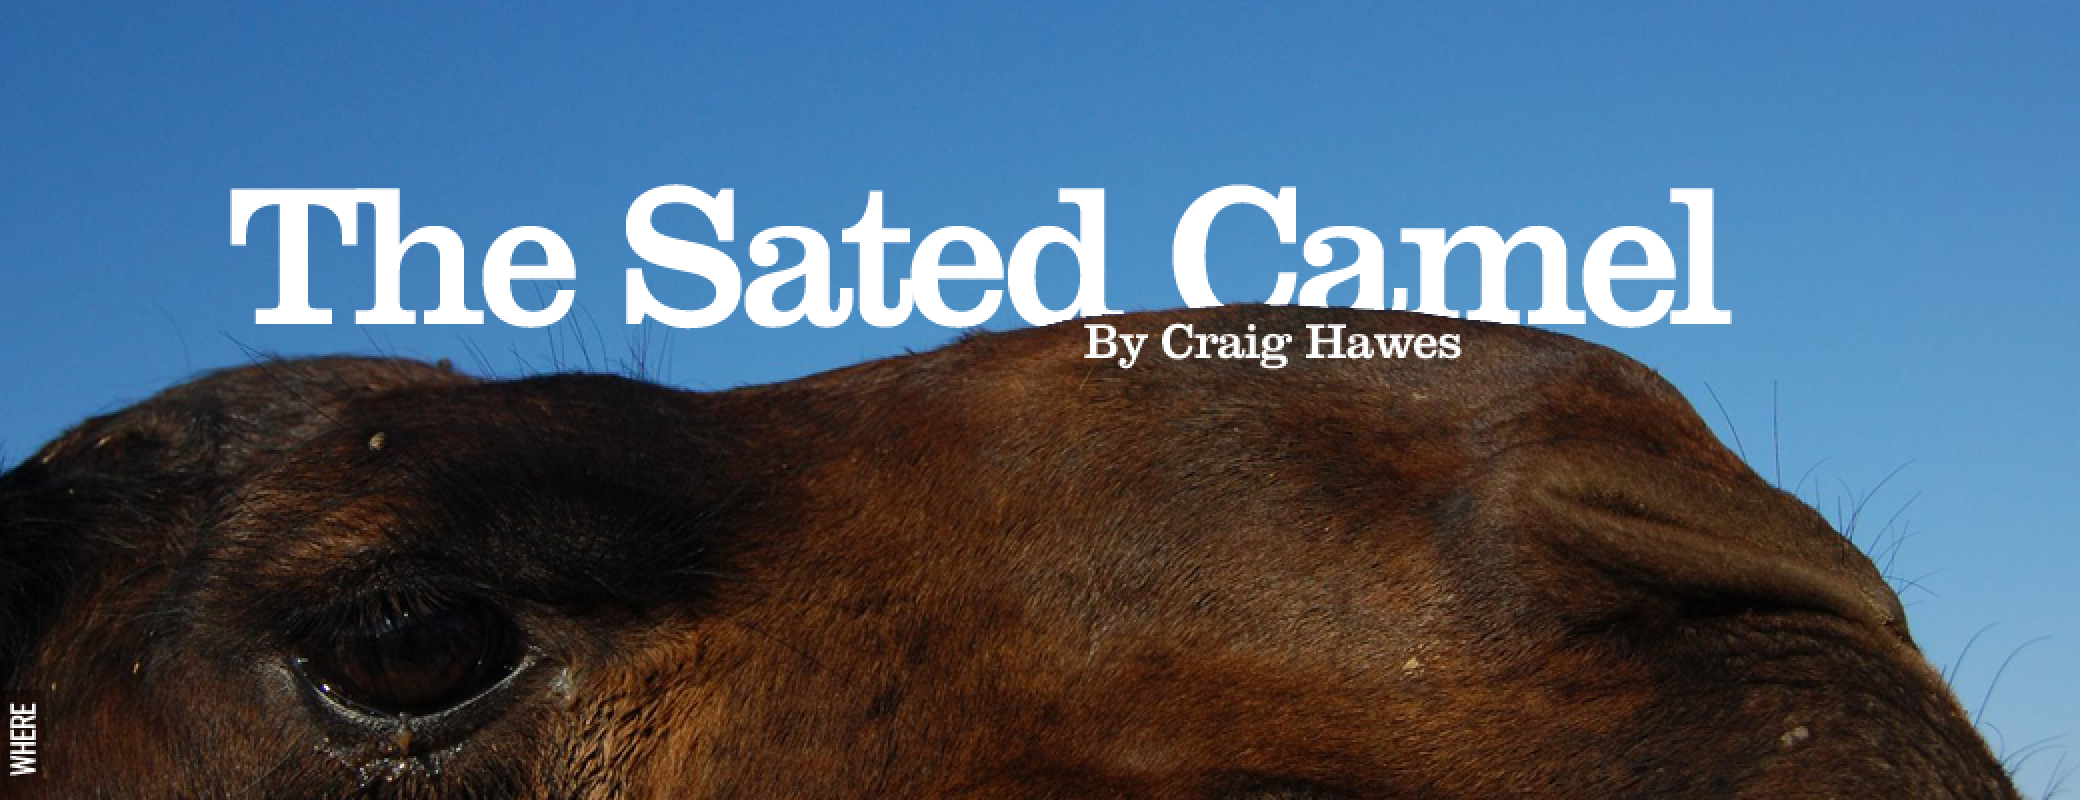 the-sated-camel-by-craig-hawes@2x.jpg